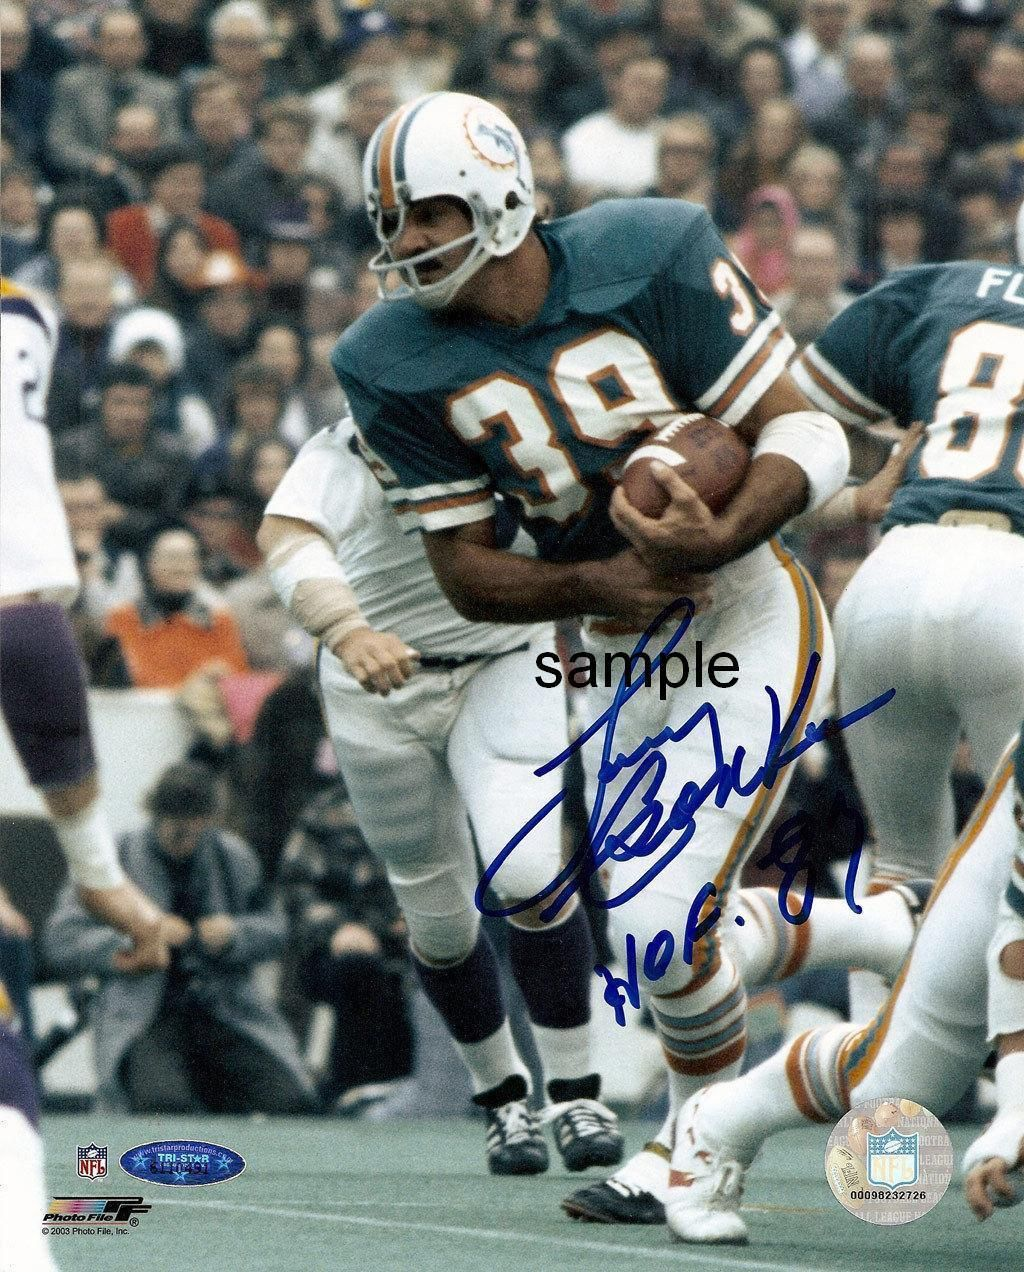 3f9cab19f35 LARRY CSONKA 1 REPRINT 8X10 AUTOGRAPHED SIGNED PHOTO PICTURE MIAMI DOLPHINS  RP